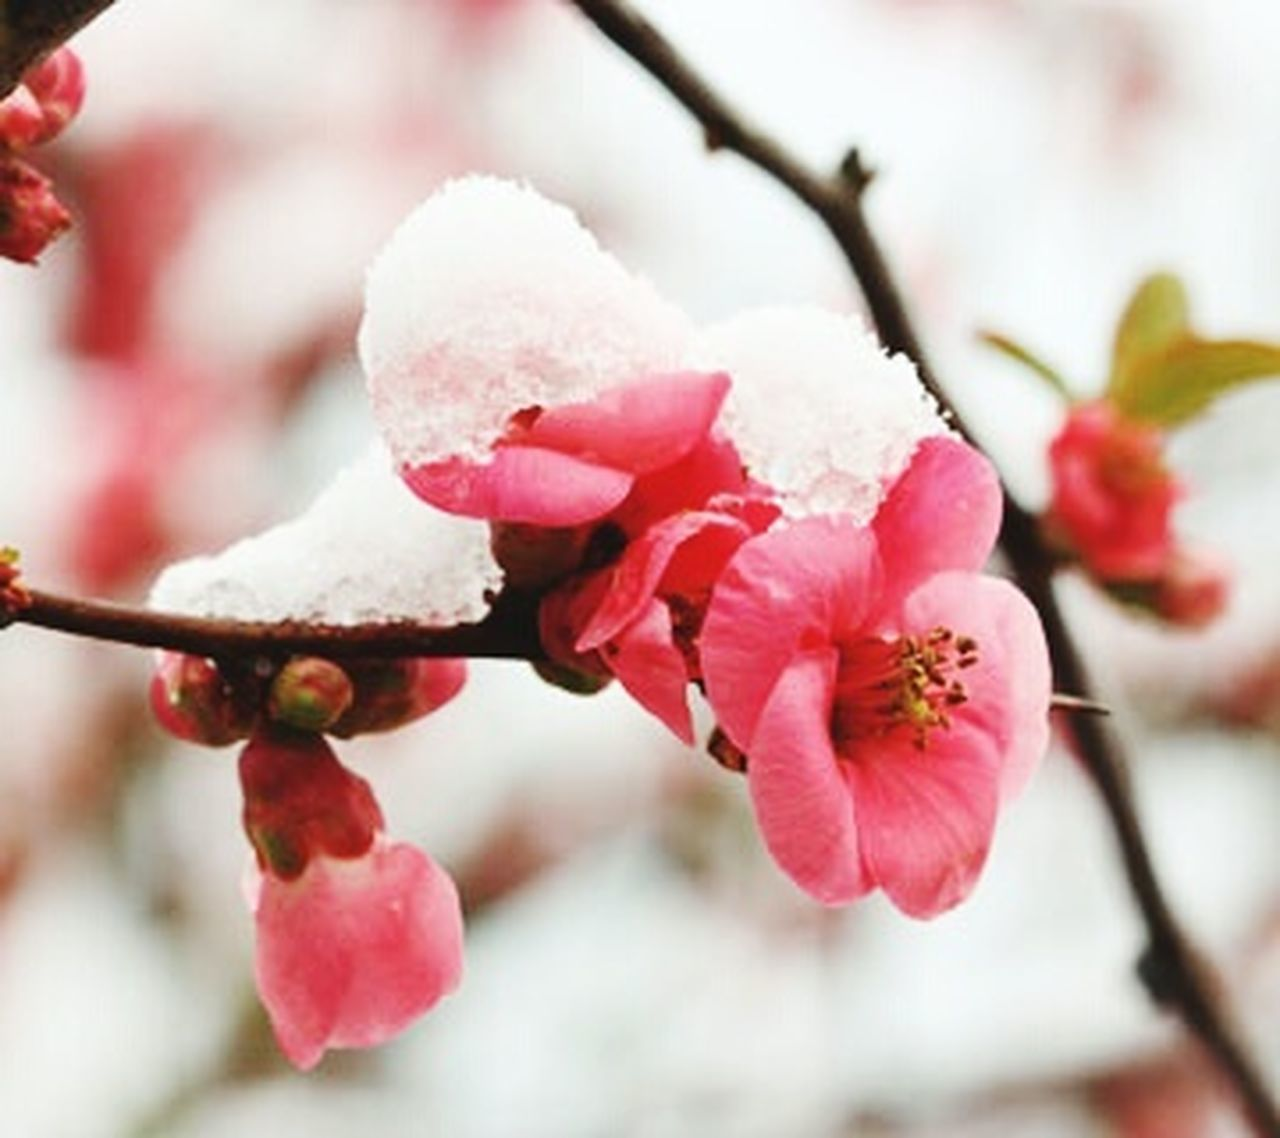 flower, nature, beauty in nature, branch, growth, winter, close-up, twig, fragility, freshness, pink color, blossom, cold temperature, springtime, tree, plant, outdoors, no people, day, snow, focus on foreground, plum blossom, flower head